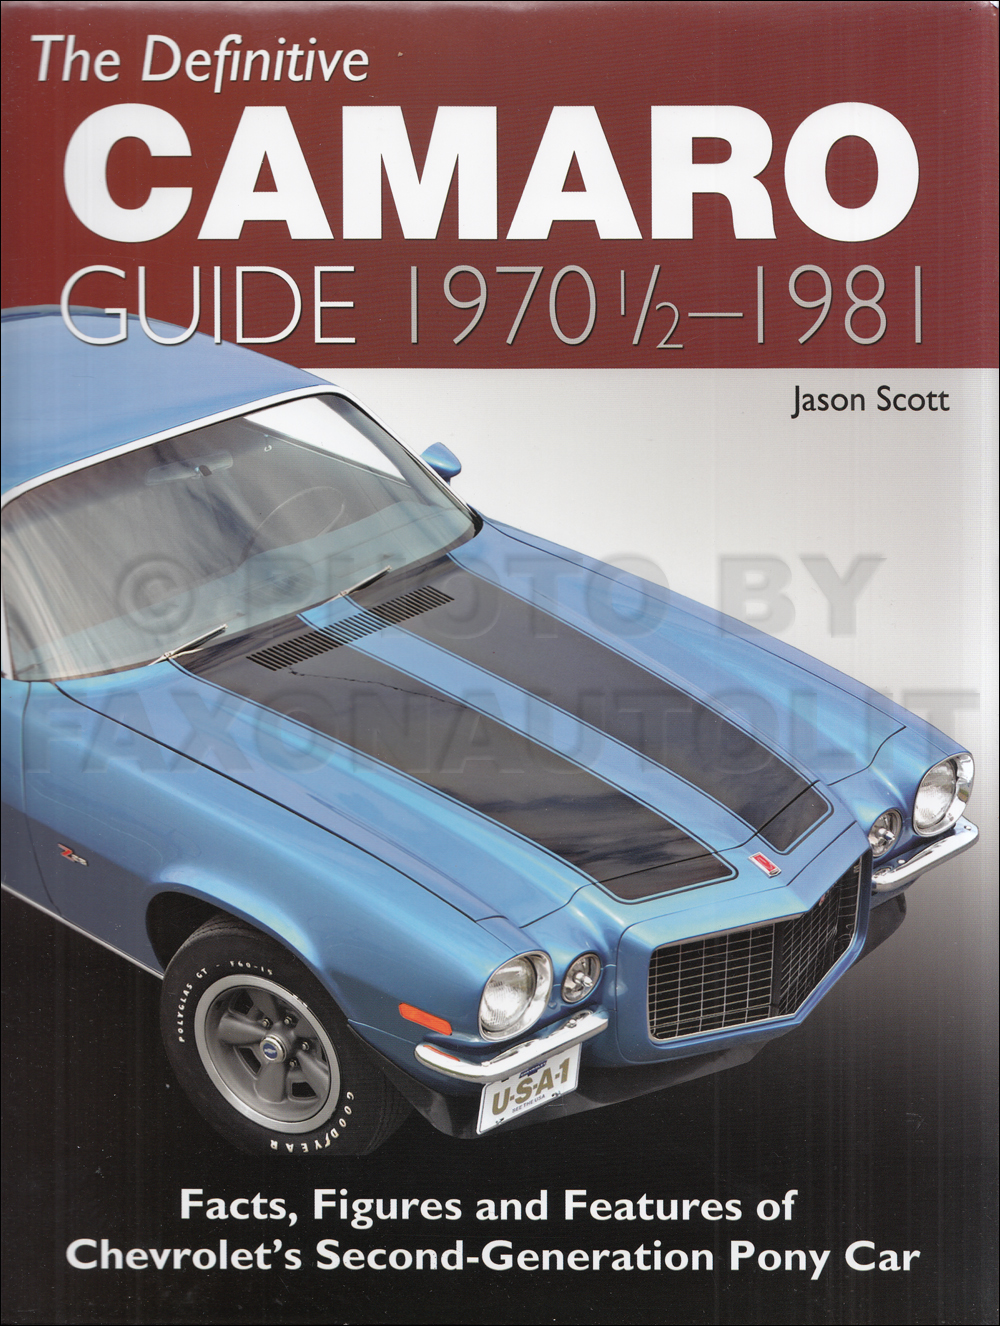 1970-1981 Definitive Camaro Guide: Facts, Figures and Features